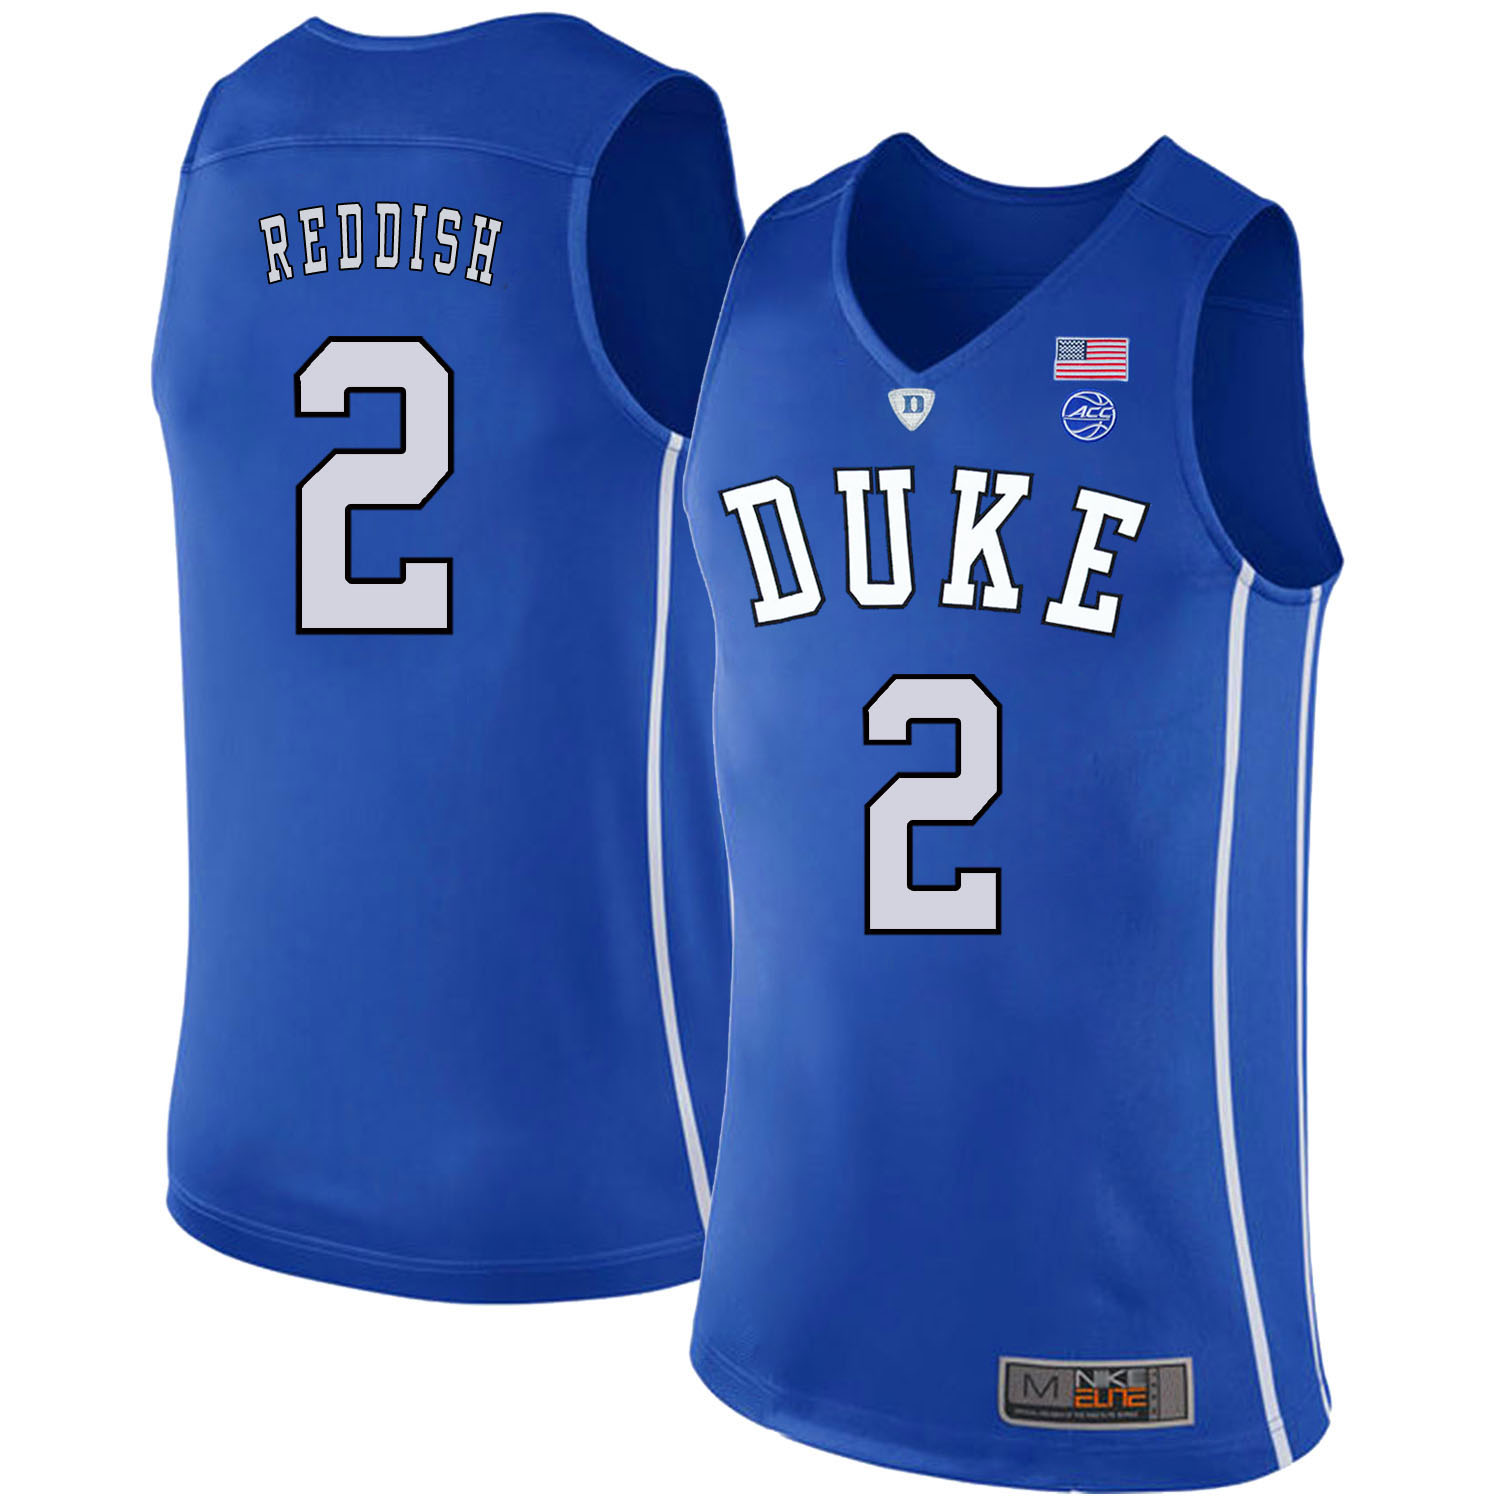 Majestic Athletic Men's Duke Blue Devils #2 Cam Reddish Blue College Basketball Jersey